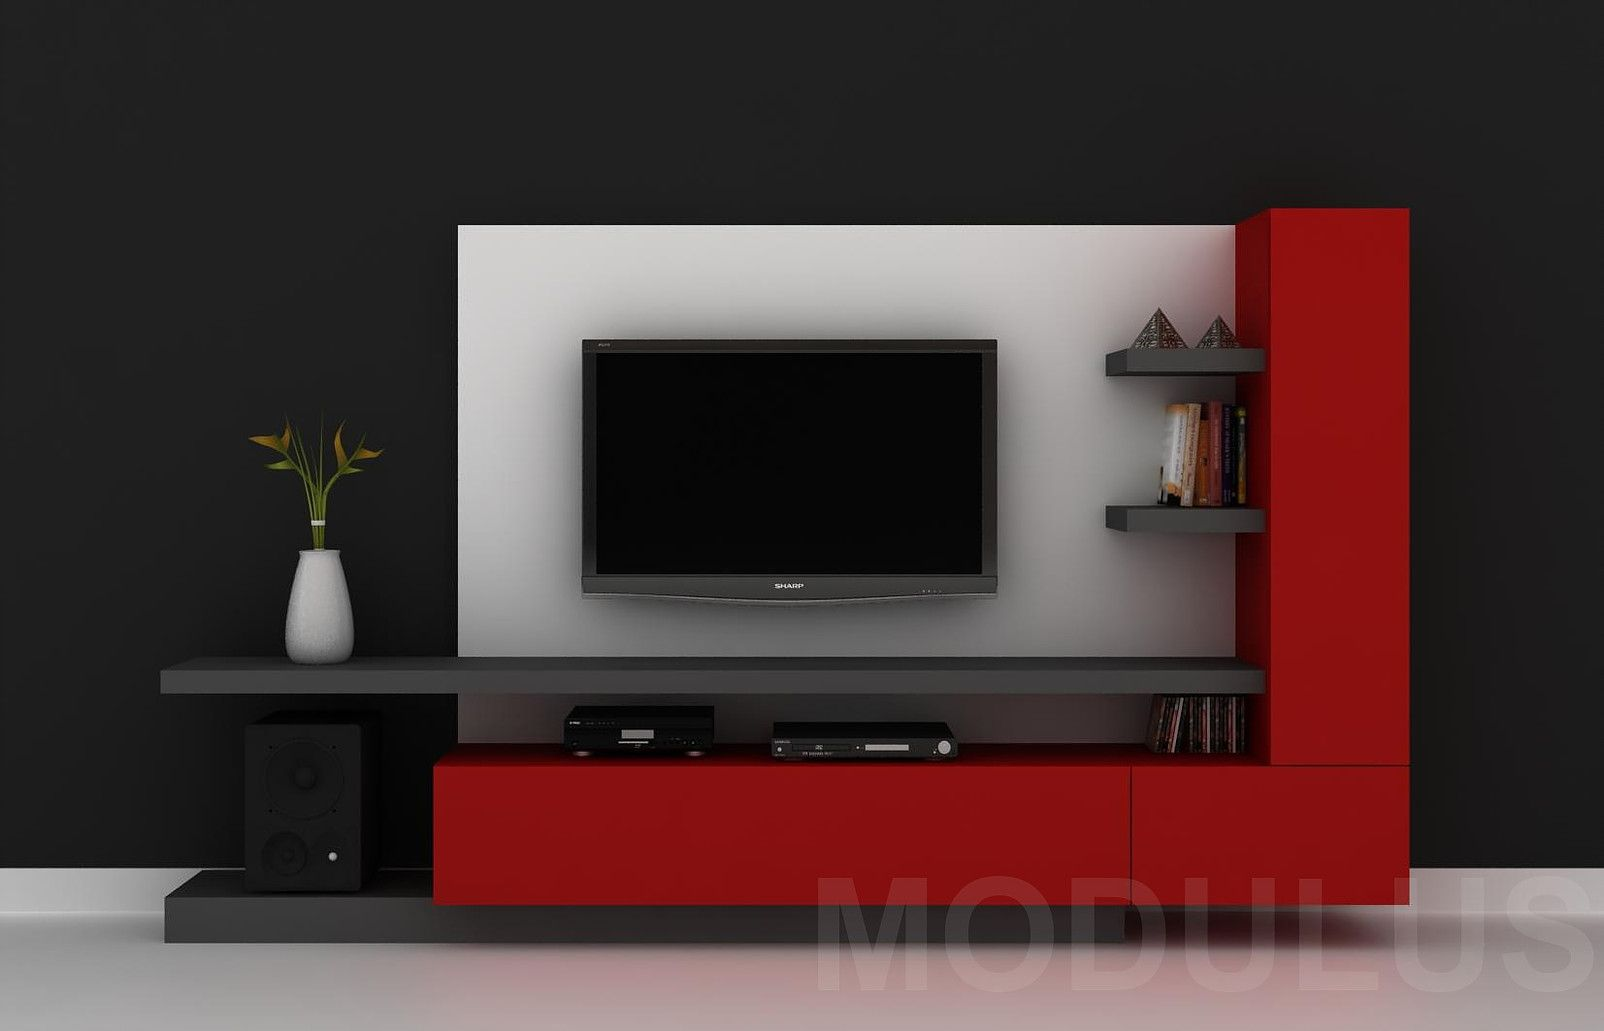 Modulares De Cocina Modernos Modulares Para Living Tv Lcd Led Wall Unit Muebles